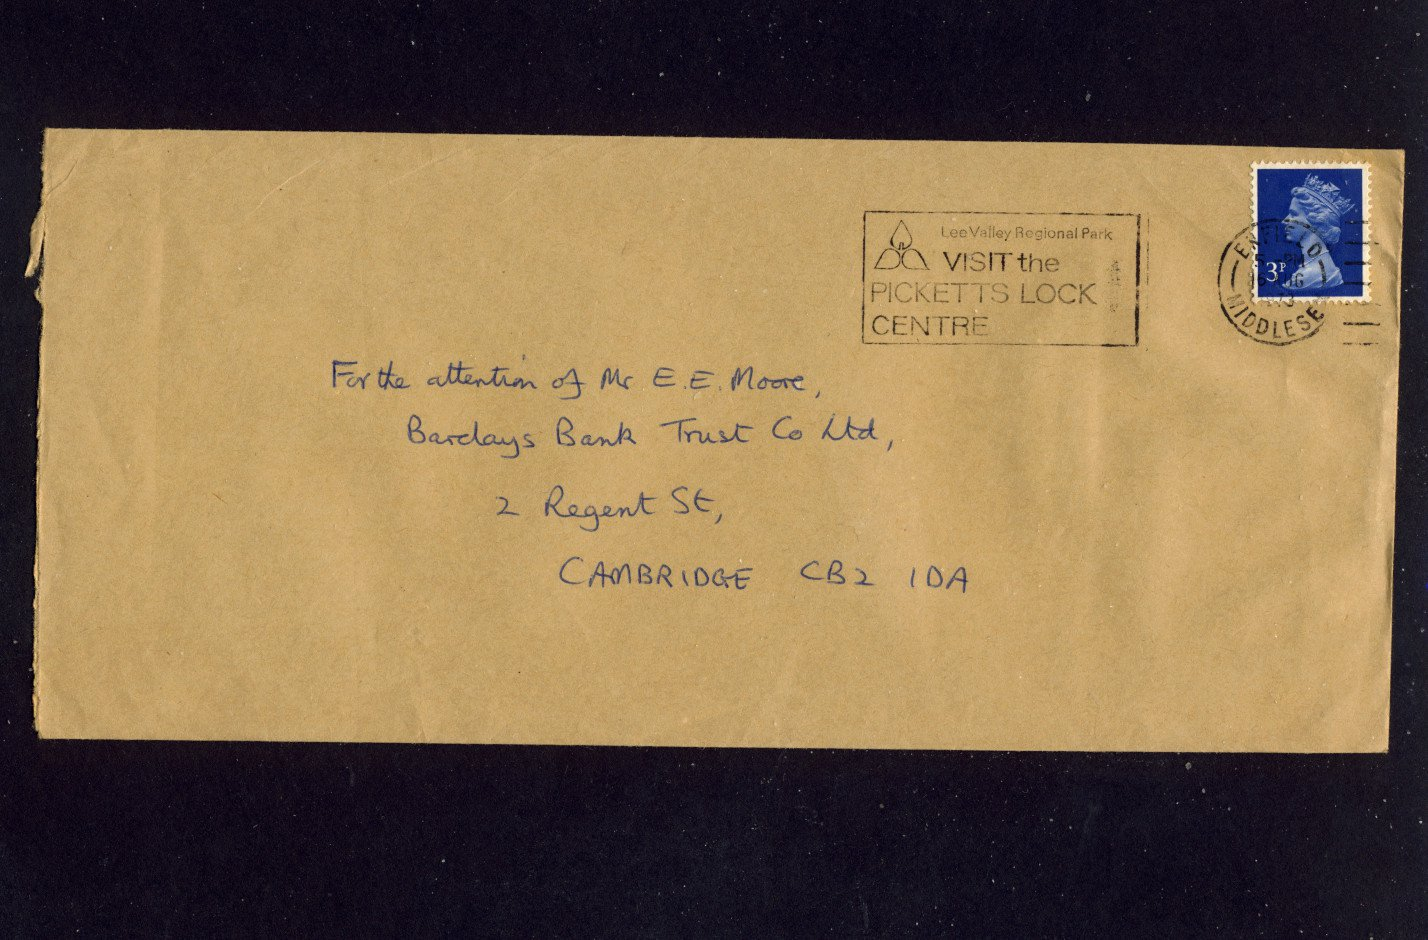 Slogan Postmark - Enfield VISIT THE PICKETTS LOCK CENTRE 1973 on commercially used envelope